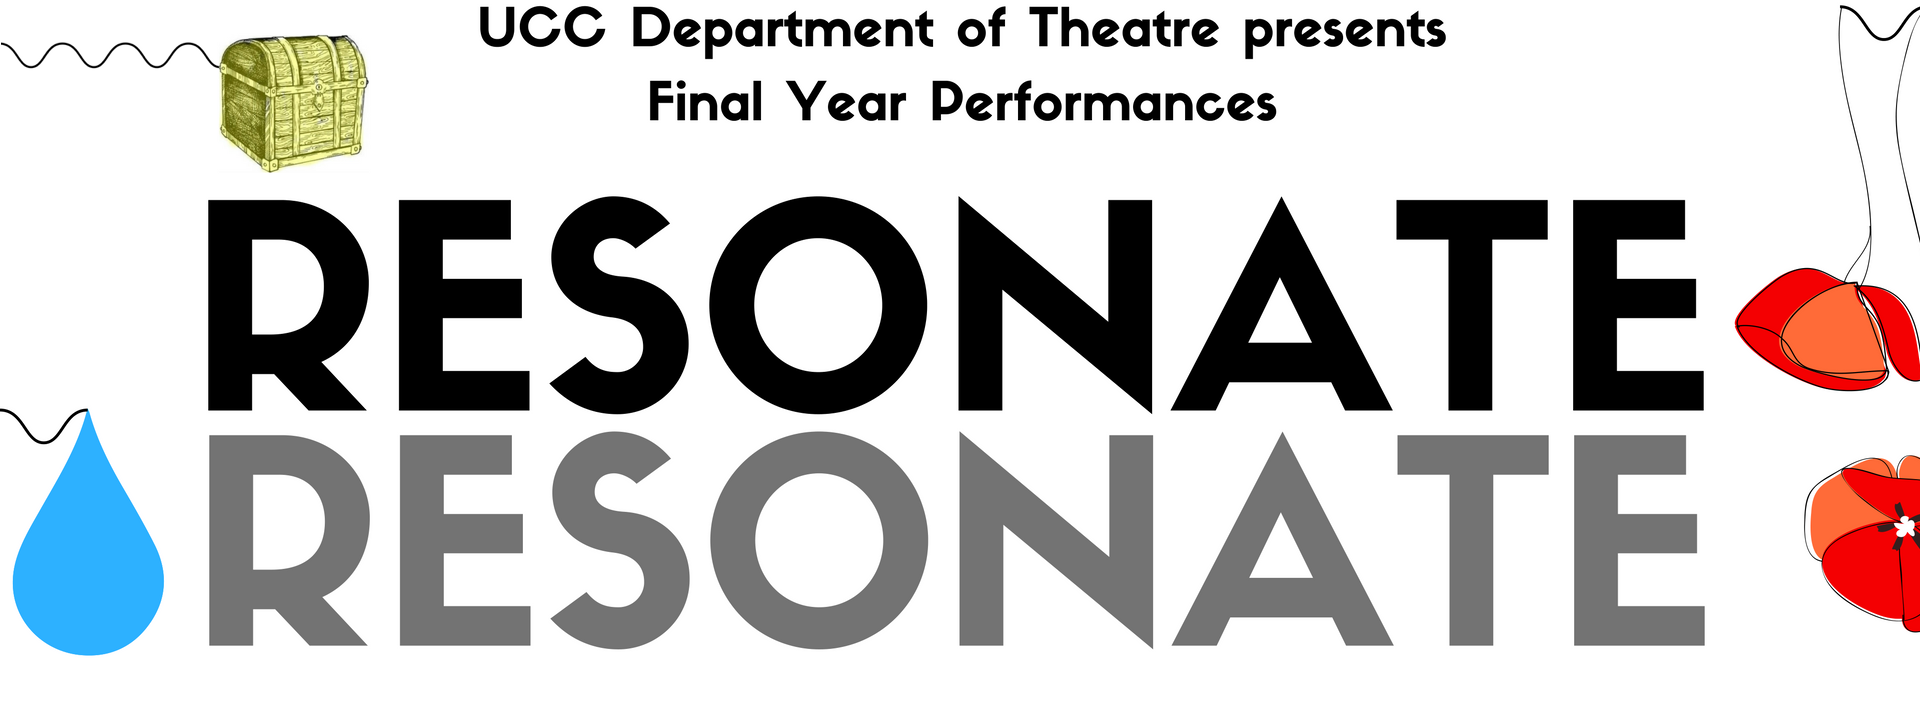 RESONATE - Final Year Performance